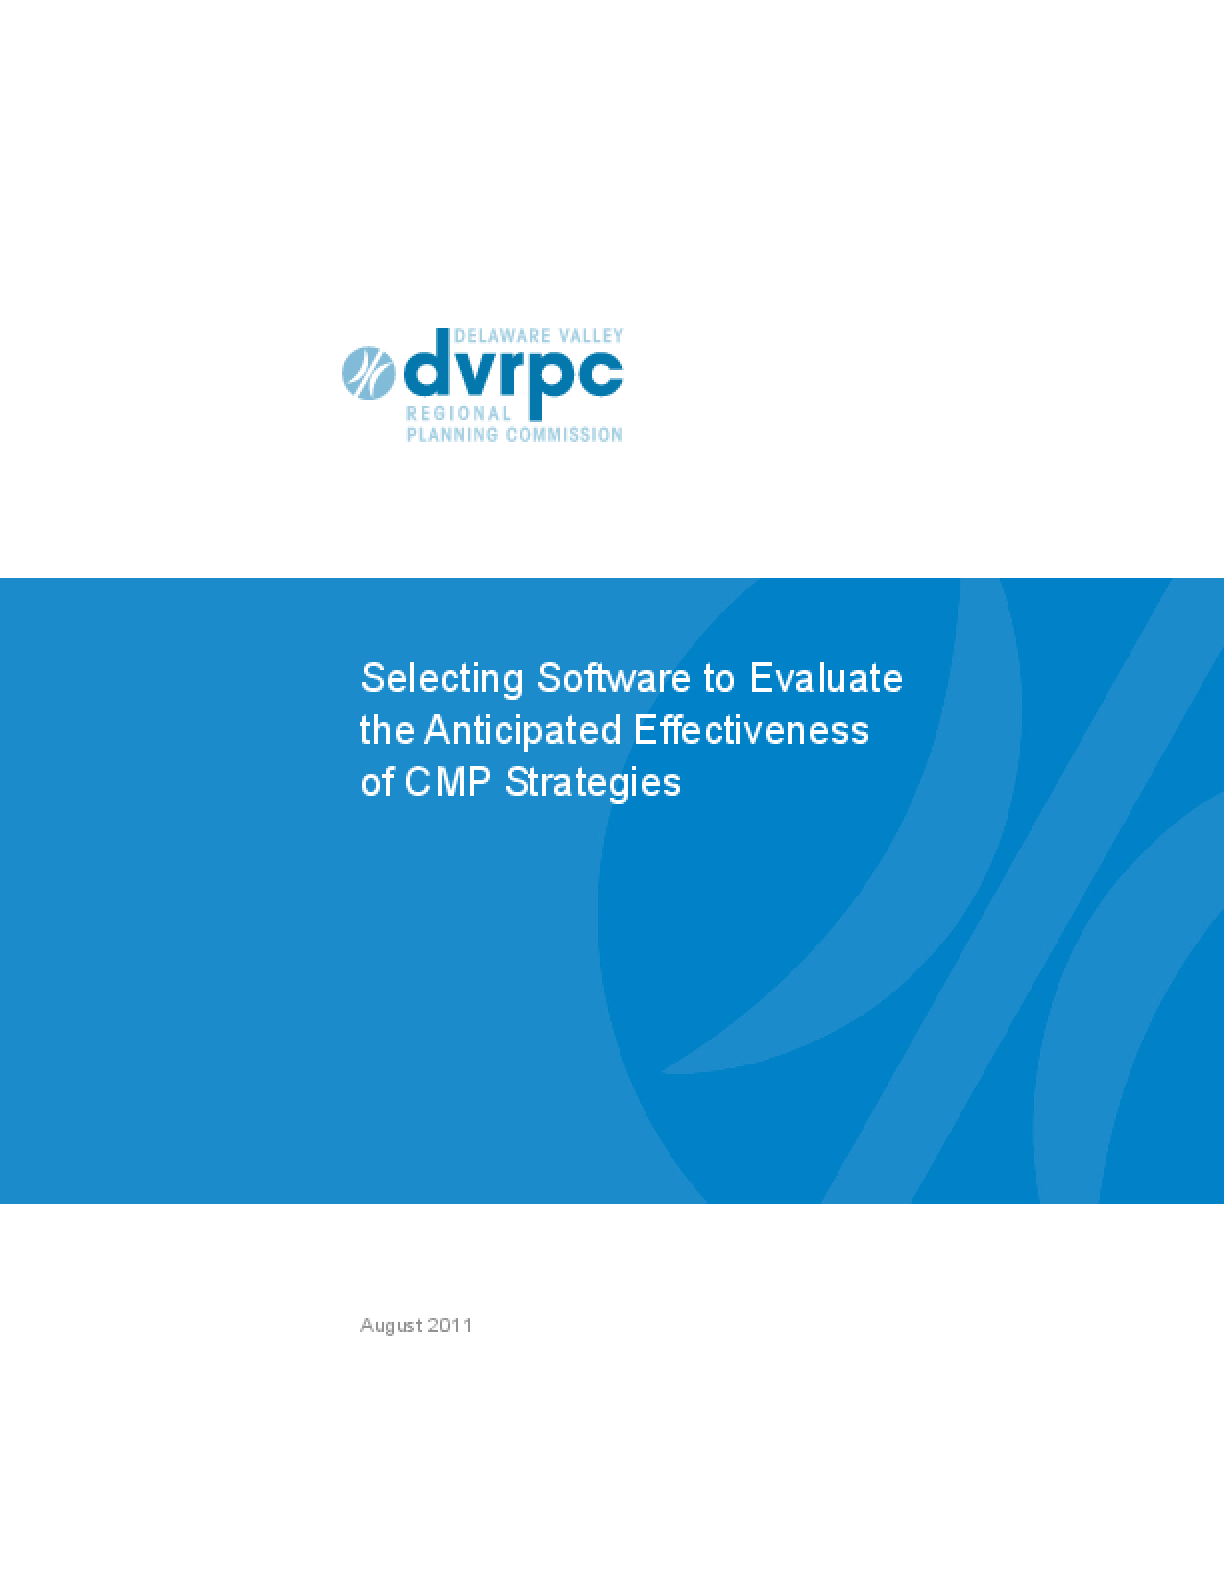 Selecting Software to Evaluate the Anticipated Effectiveness of CMP Strategies